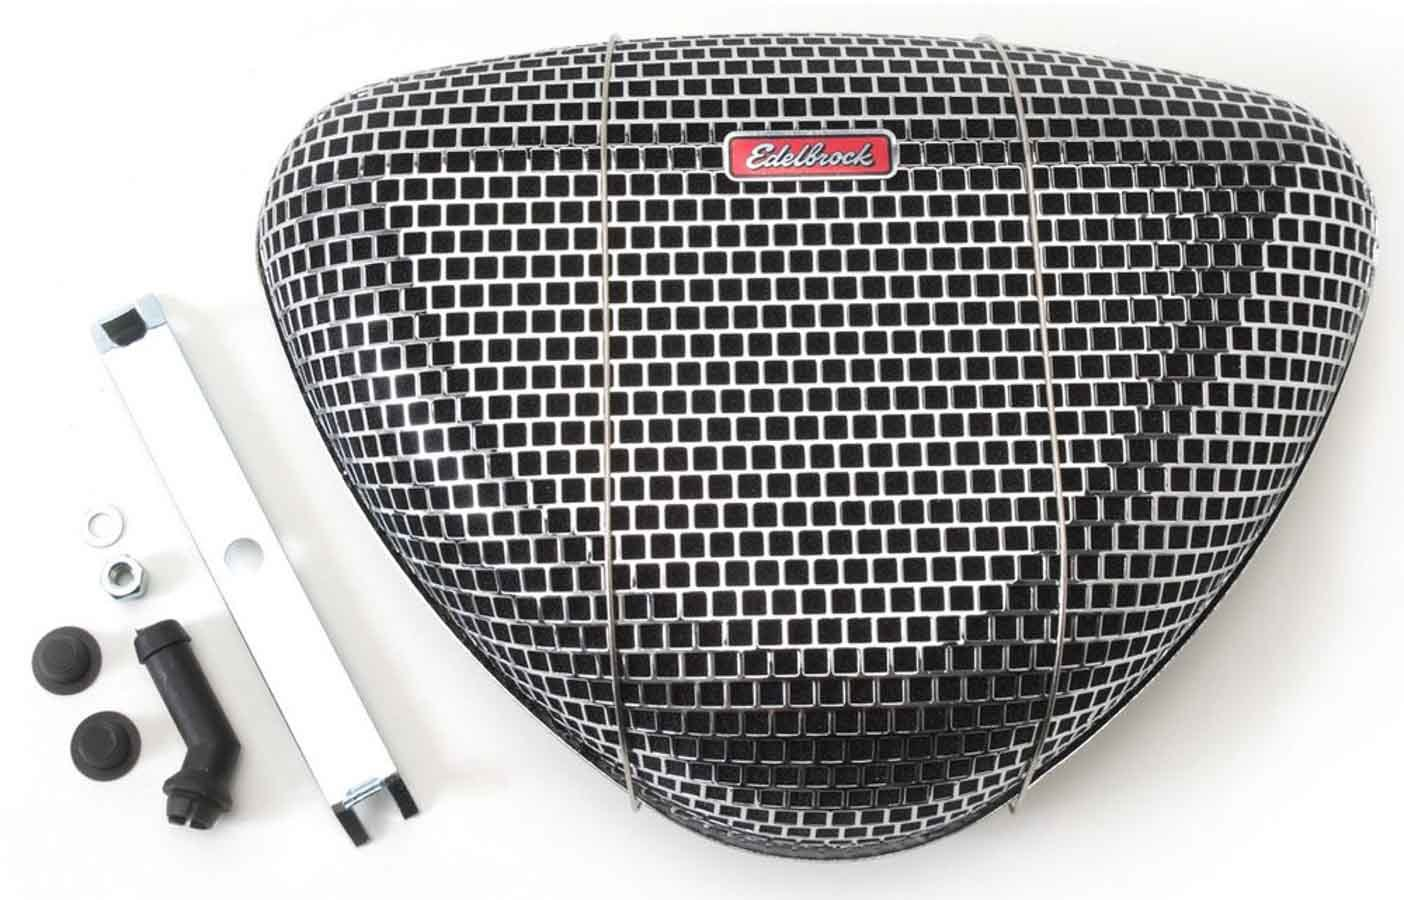 Edelbrock 1002 Air Cleaner Assembly, Pro-Flo 1000, 11-3/8 x 8-3/8 in Triangle, 3 in Tall, 5-1/8 in Carb Flange, Raised Base, Steel, Chrome, Kit